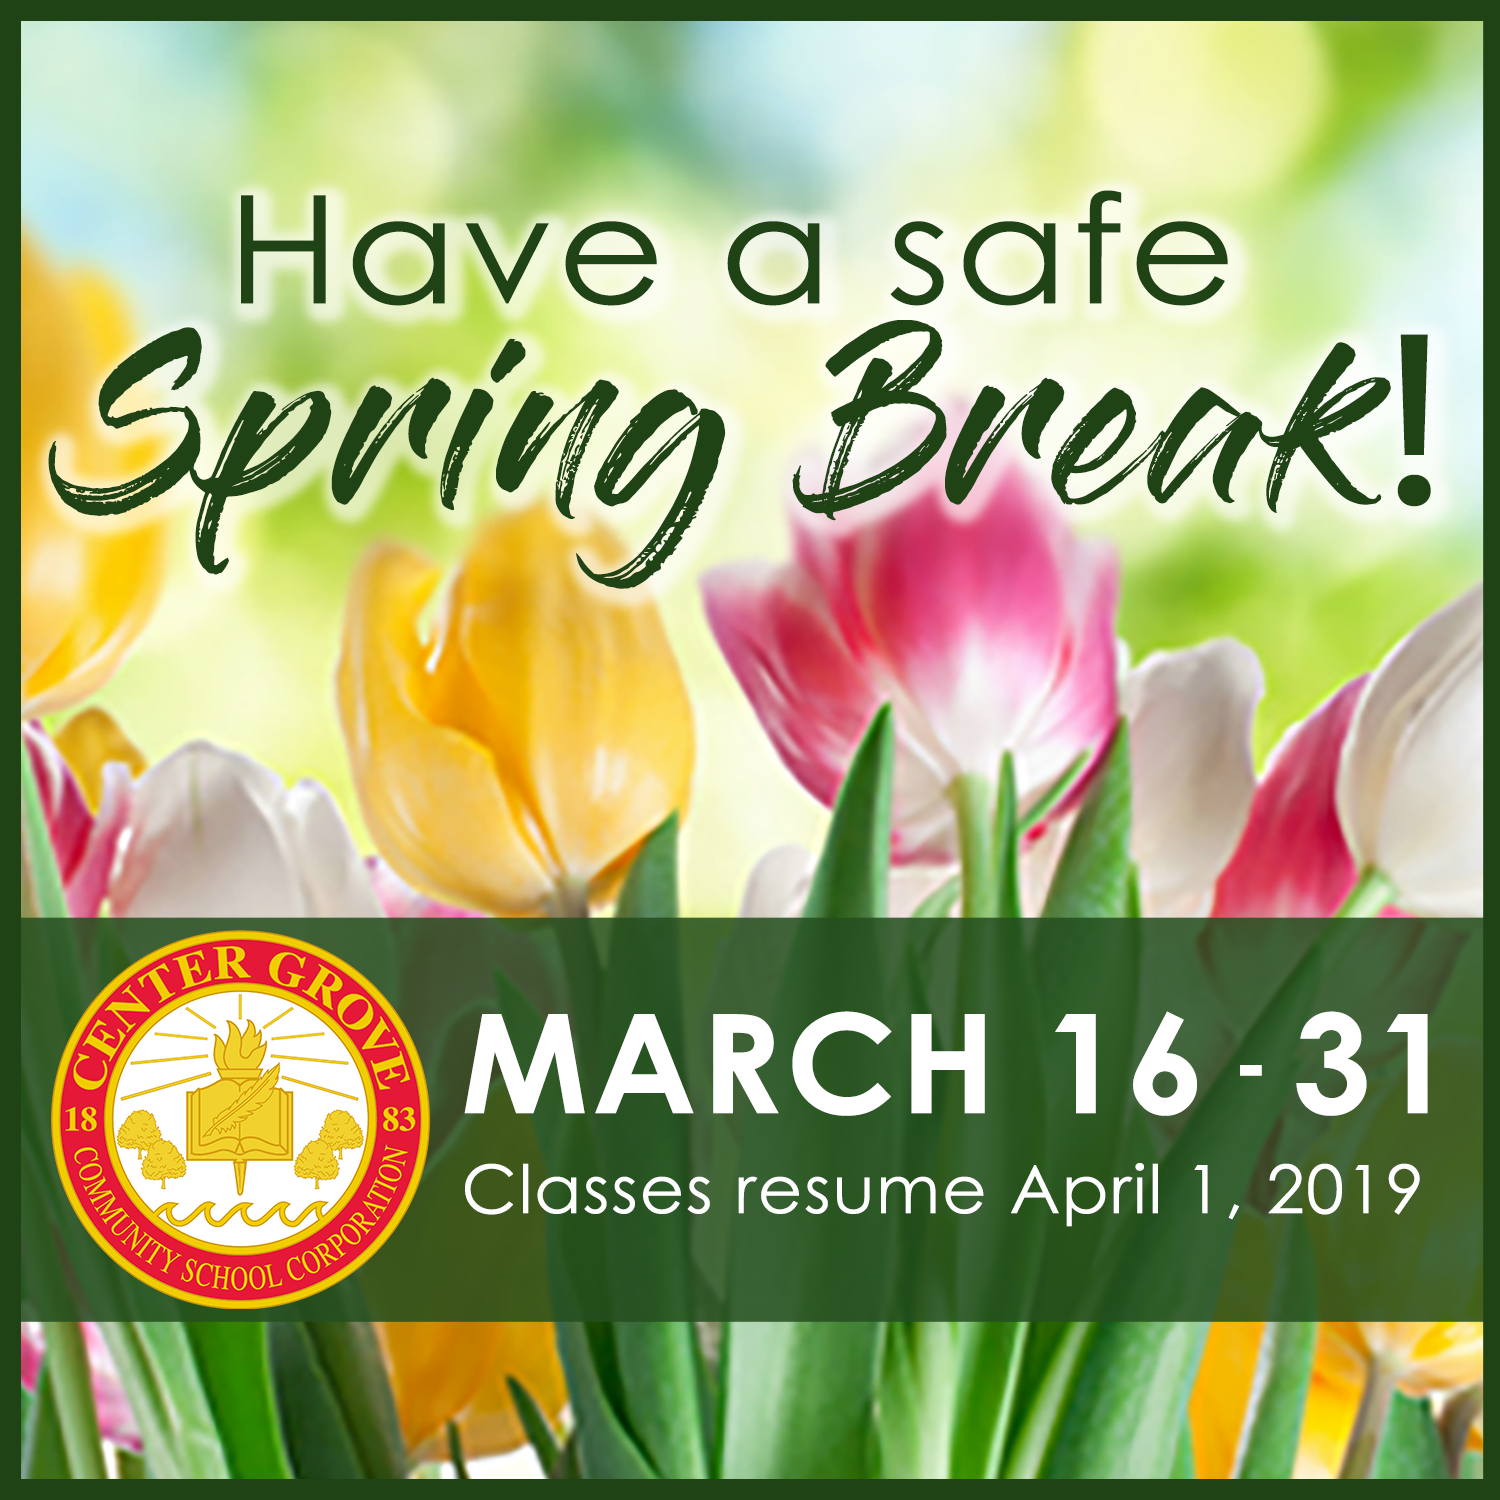 Have a safe Spring Break!